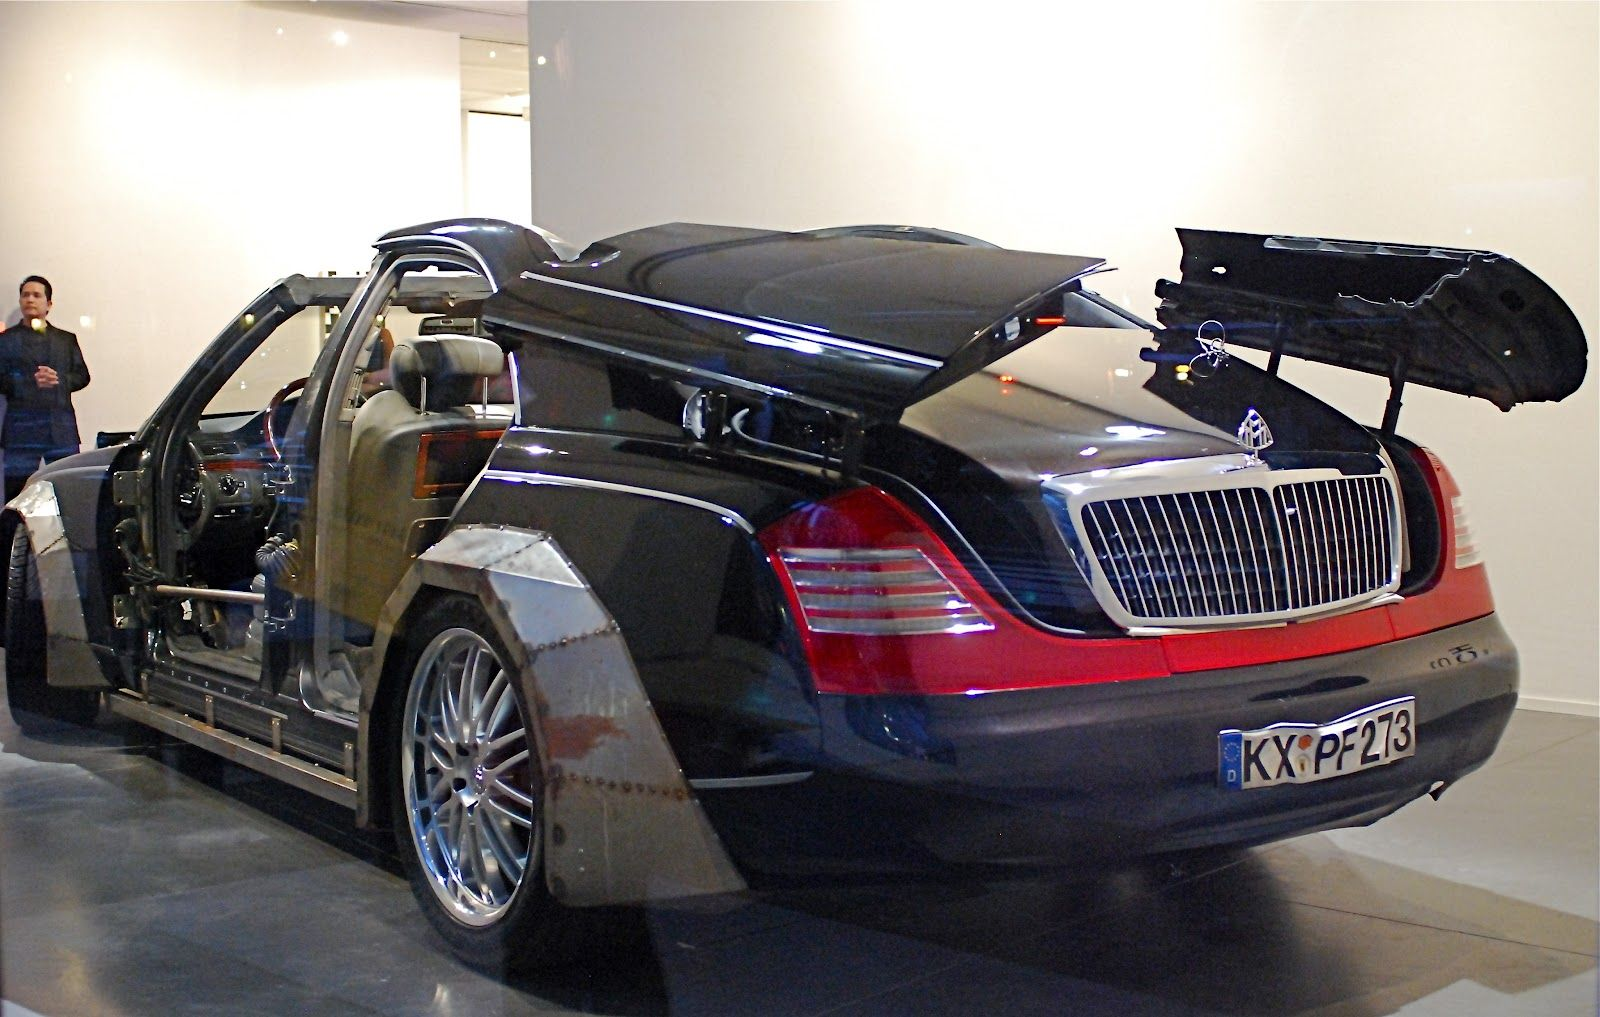 Jay Z Maybach Coupe 2004 Otis Maybach 57 From Jay Z And Kanye West Otis Video For Maybach Coupe Maybach Kanye West Otis